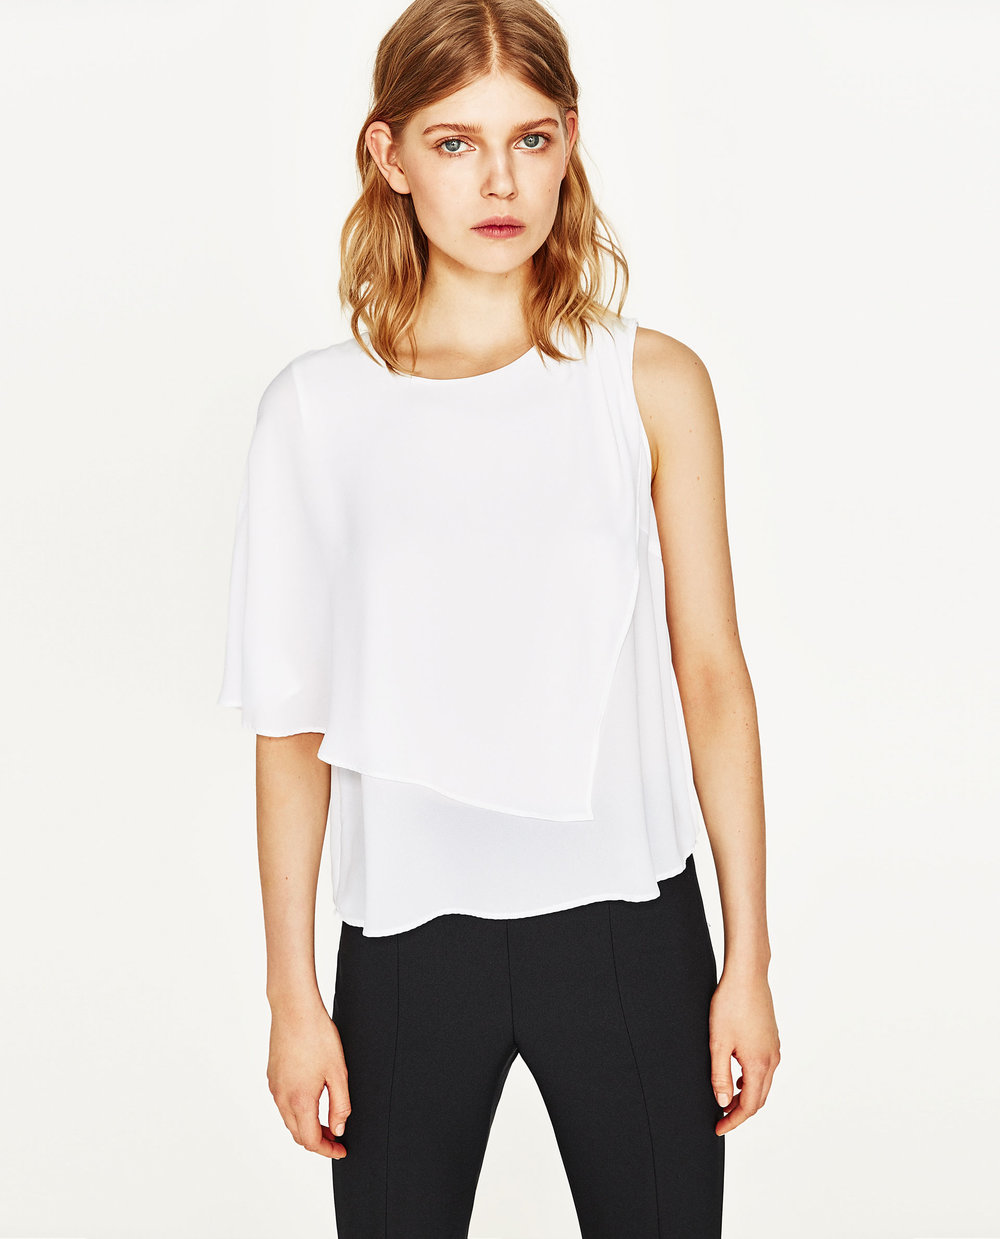 Top with Asymmetric Sleeves, $30 at Zara.com.